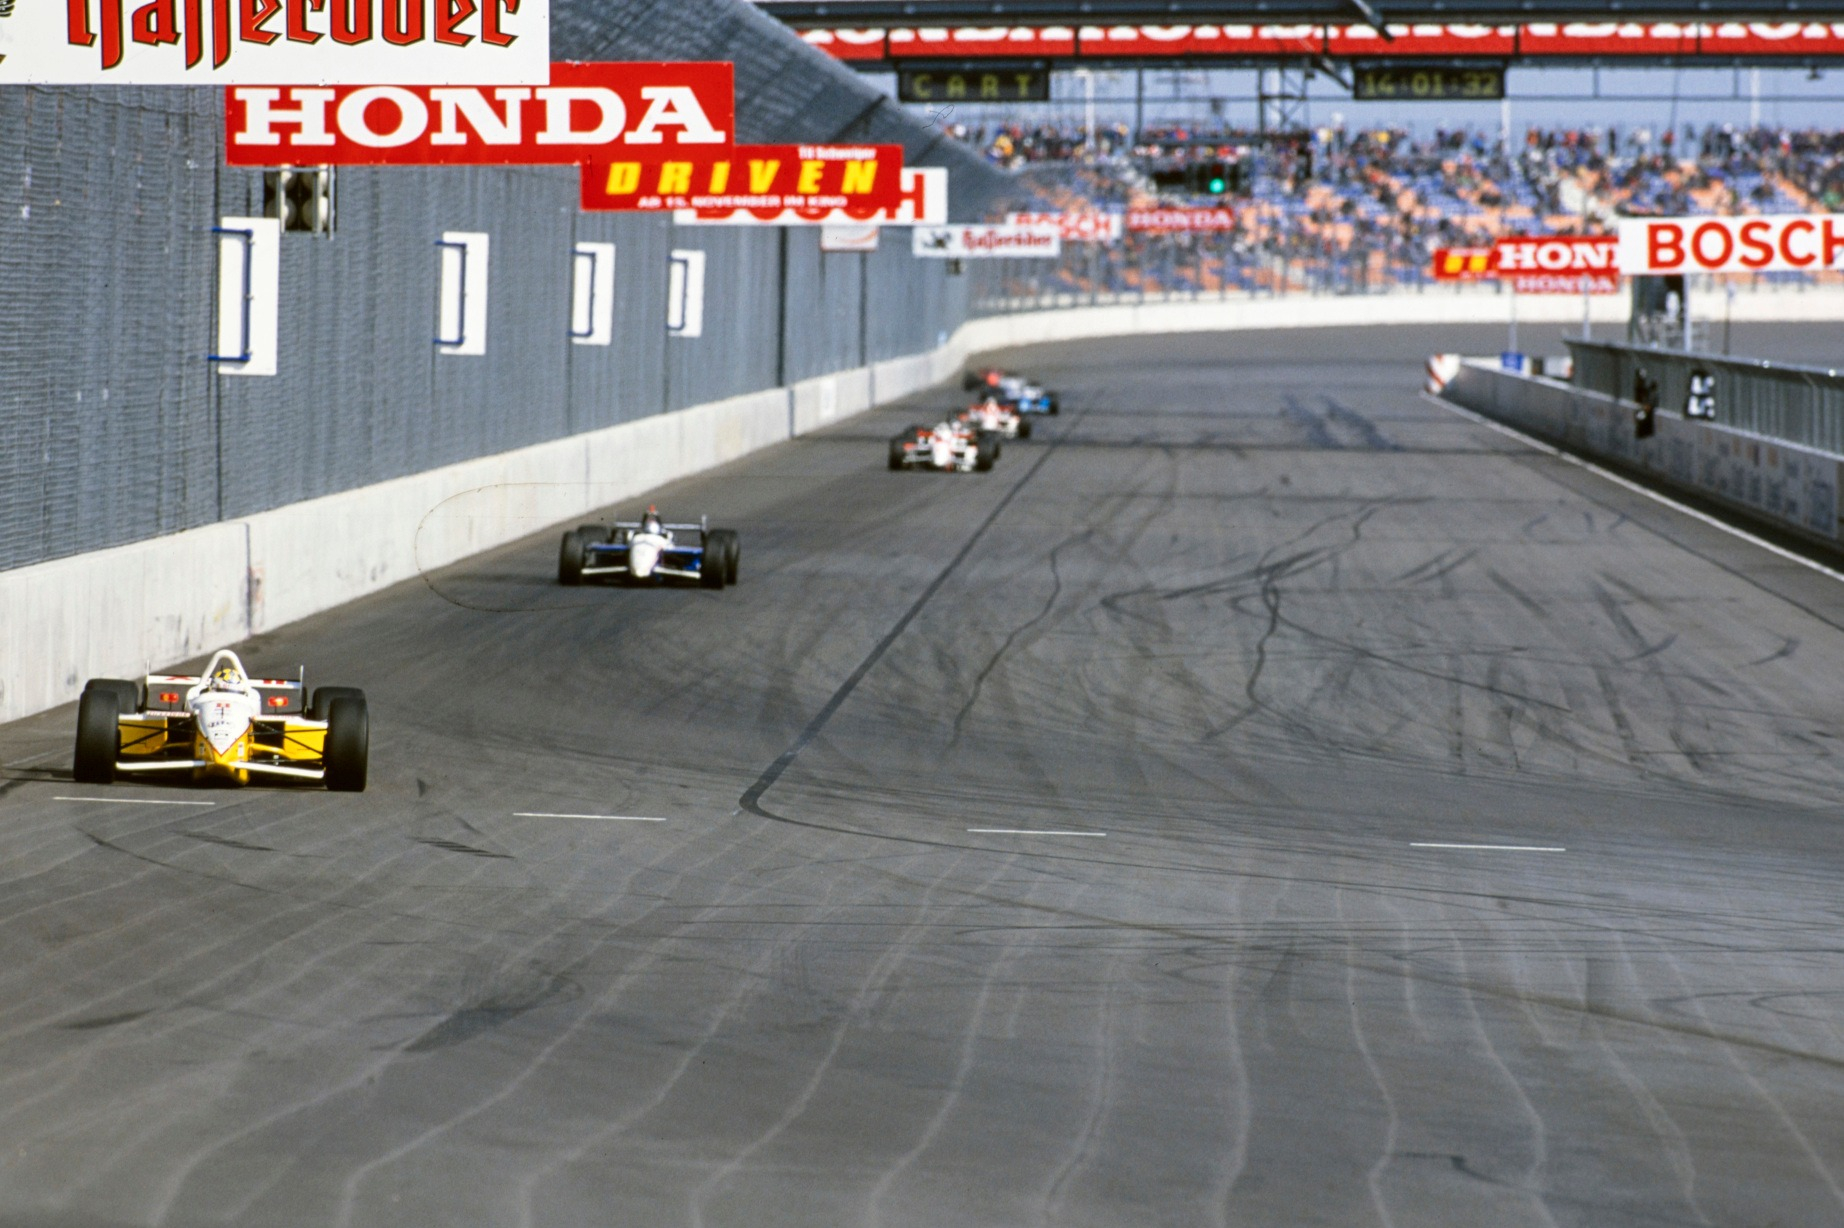 Kenny Brack leads Michael Andretti on the Lausitzring oval in 2001